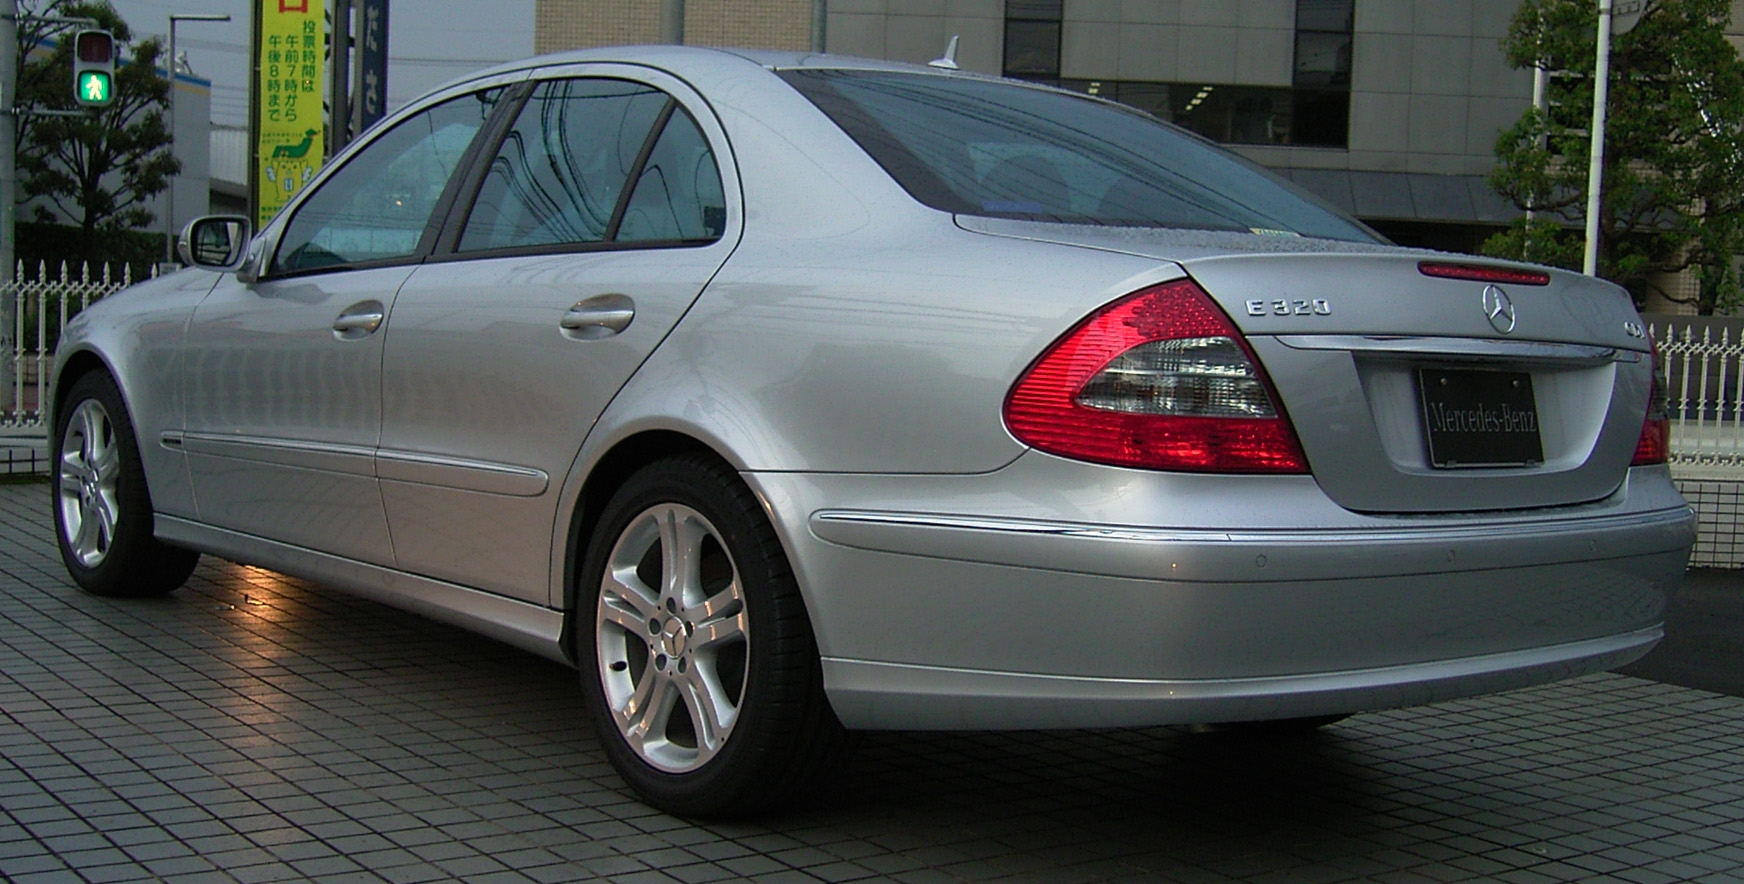 File Mercedes Benz W211 E320 Ja 3 Jpg Wikimedia Commons